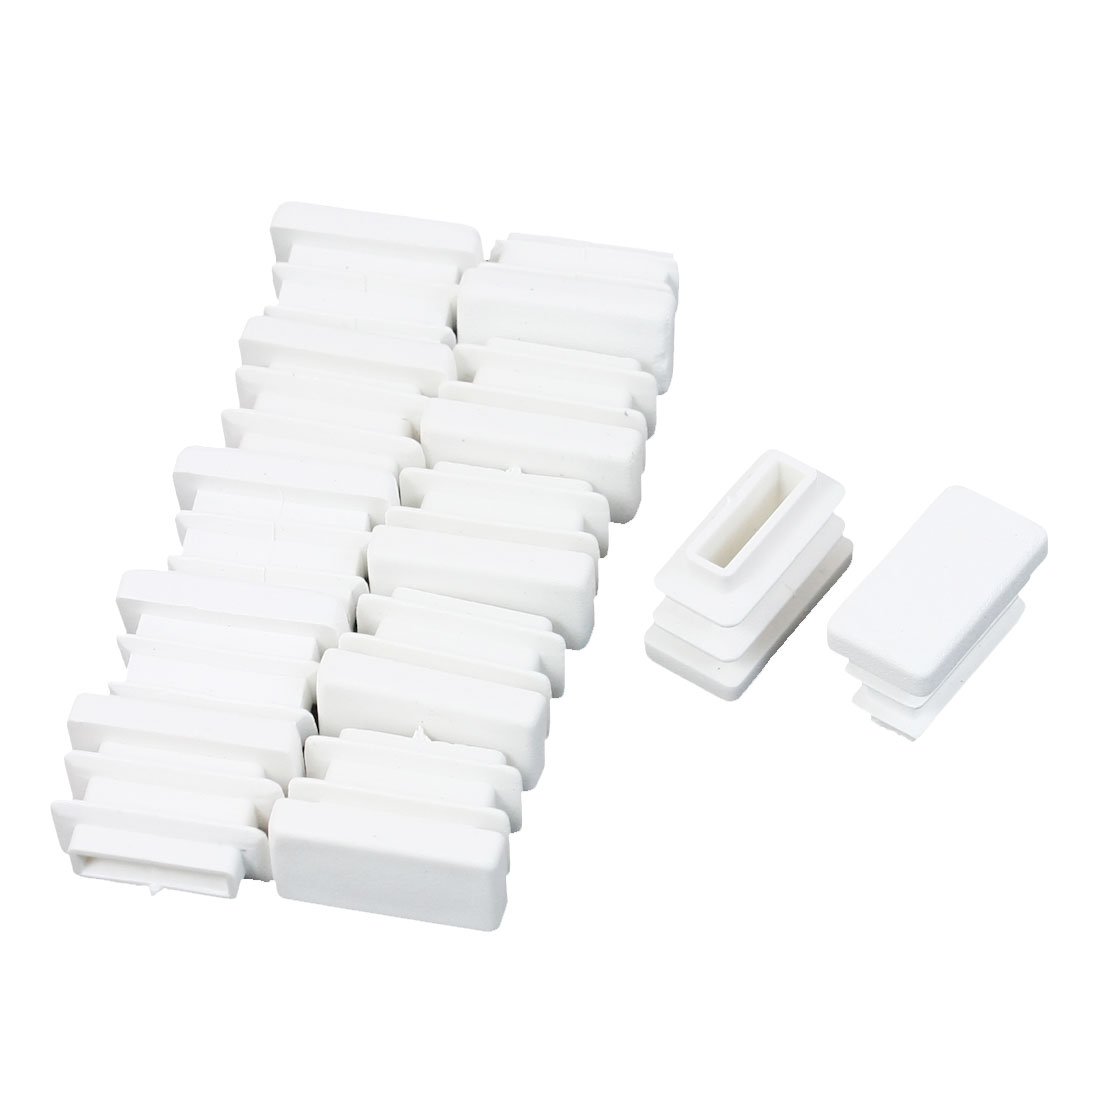 12 Pcs 10mm x 20mm Plastic Ribbed Design End Caps Rectangle Tubing Tube Insert